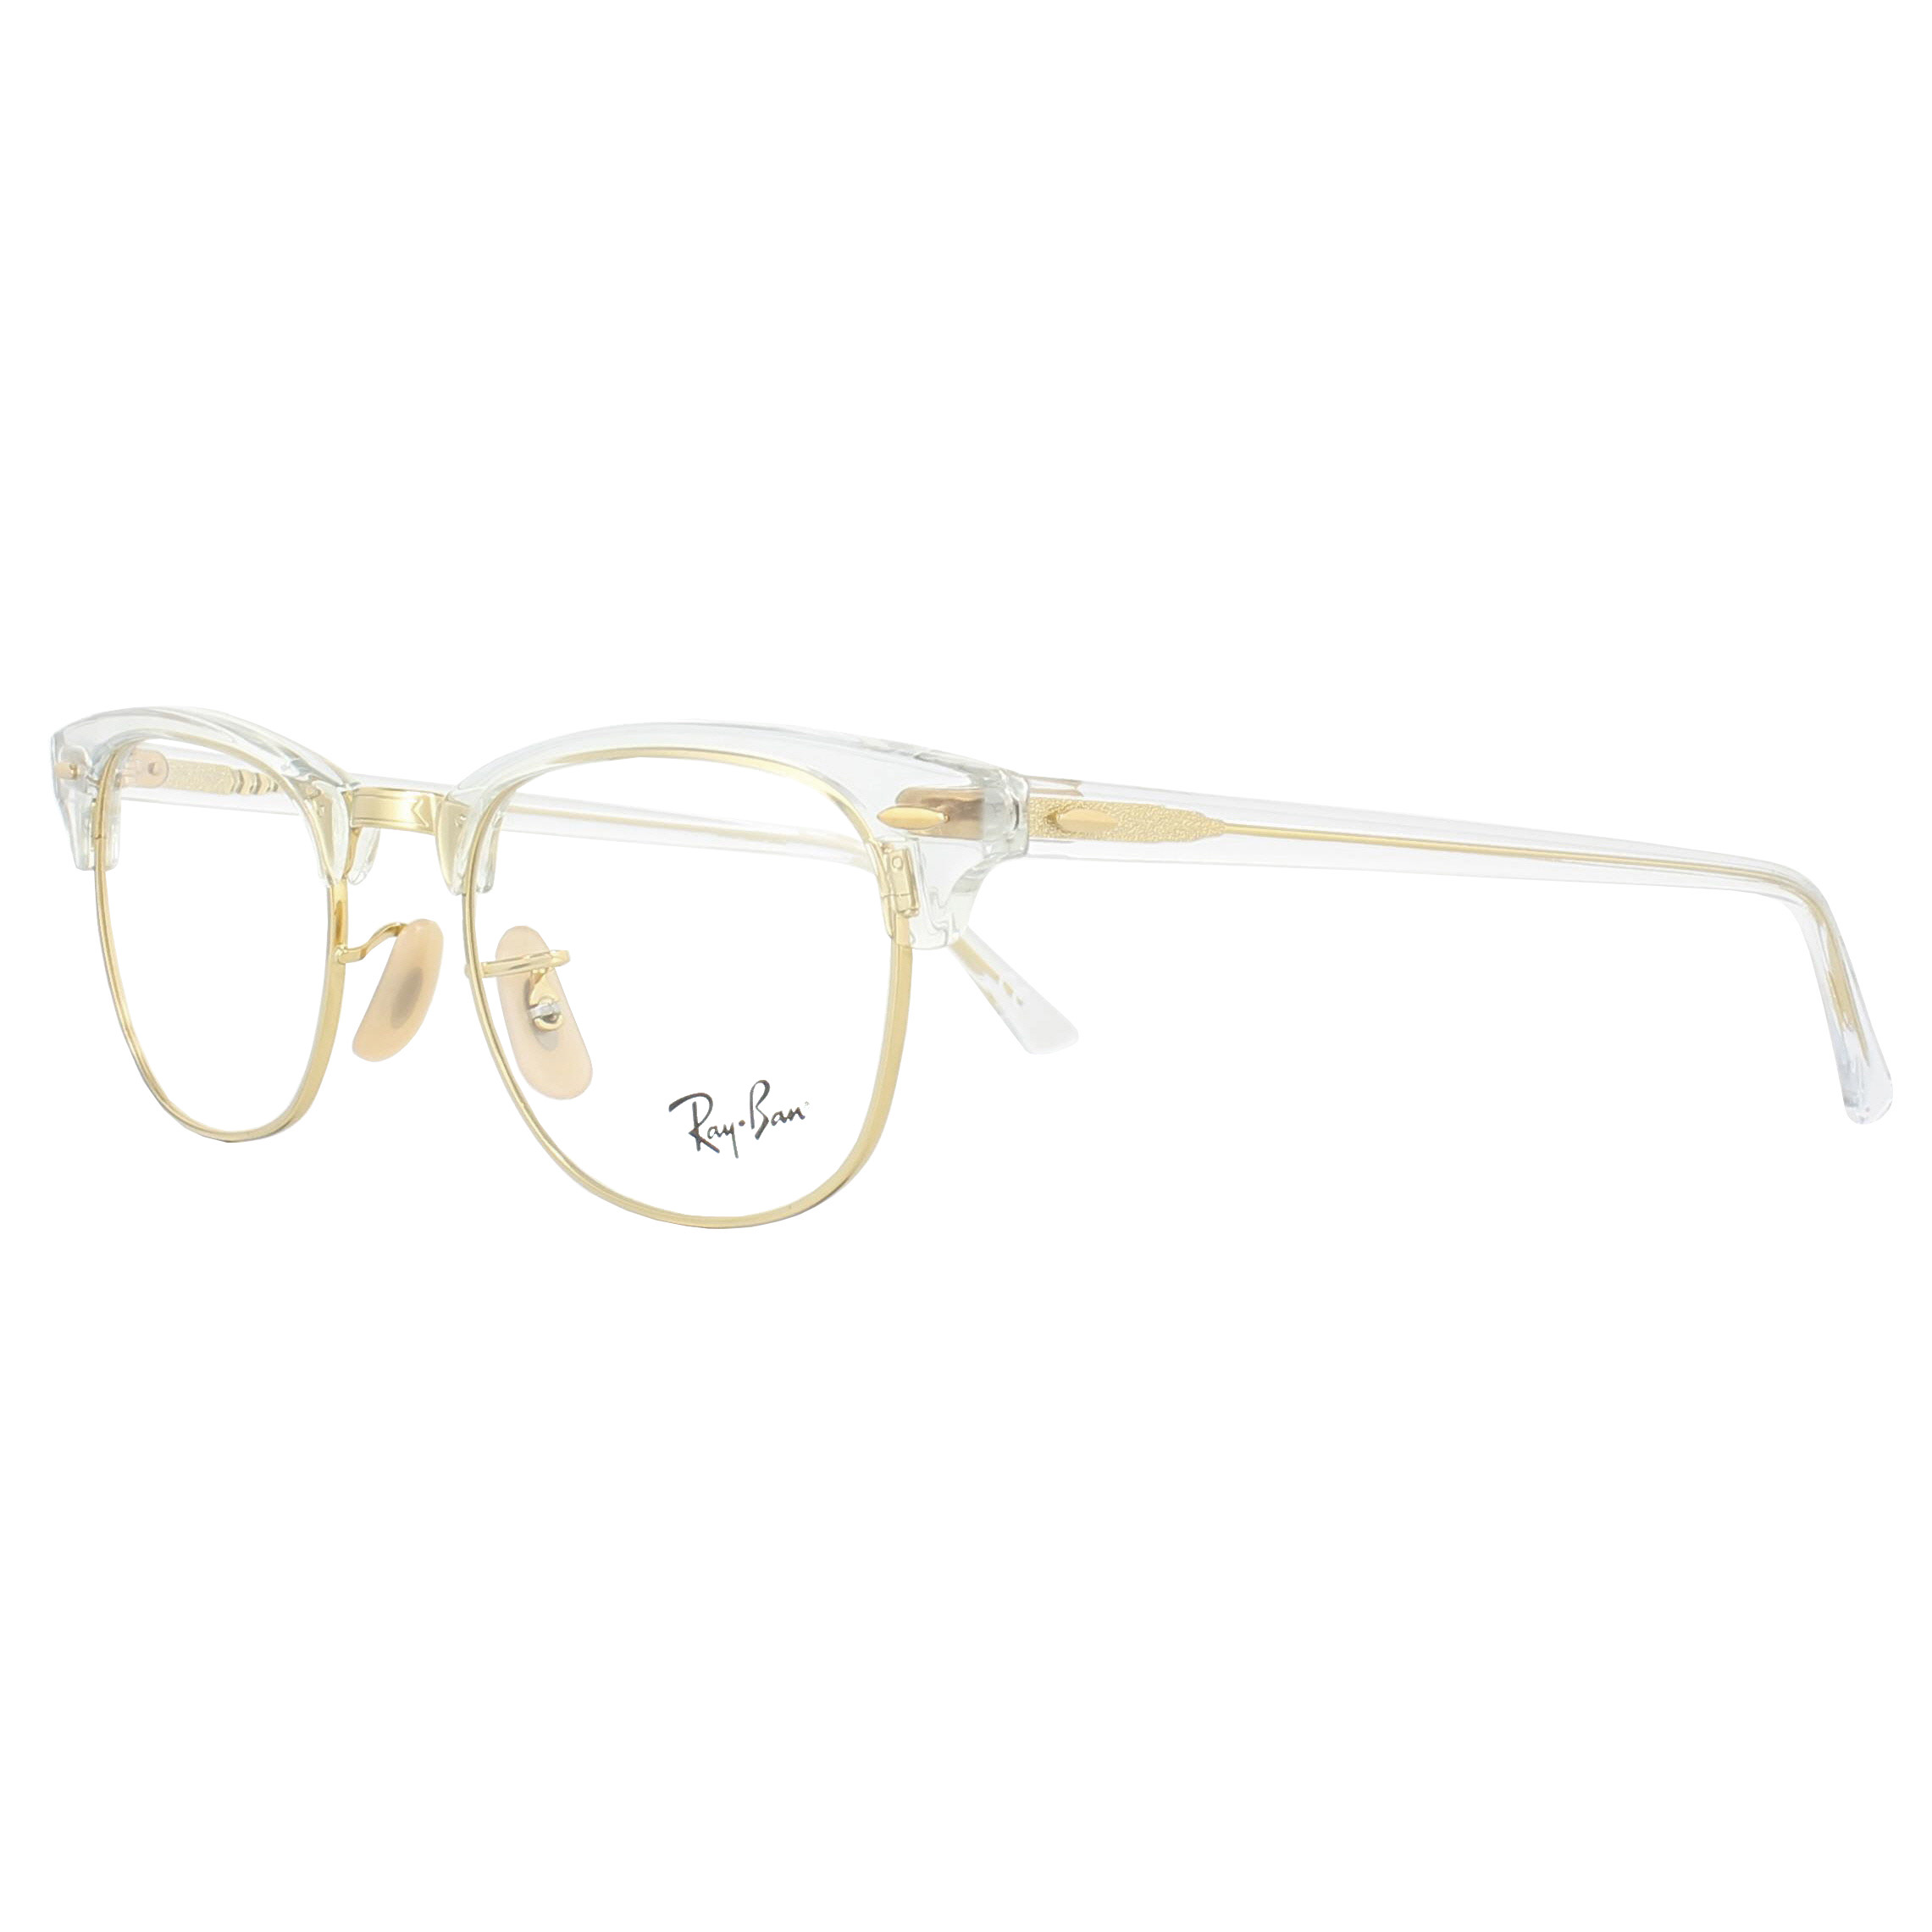 23378dfe413 ... cheap sentinel ray ban glasses frames 5154 clubmaster 5762 transparent  51mm mens womens de1f0 a3b79